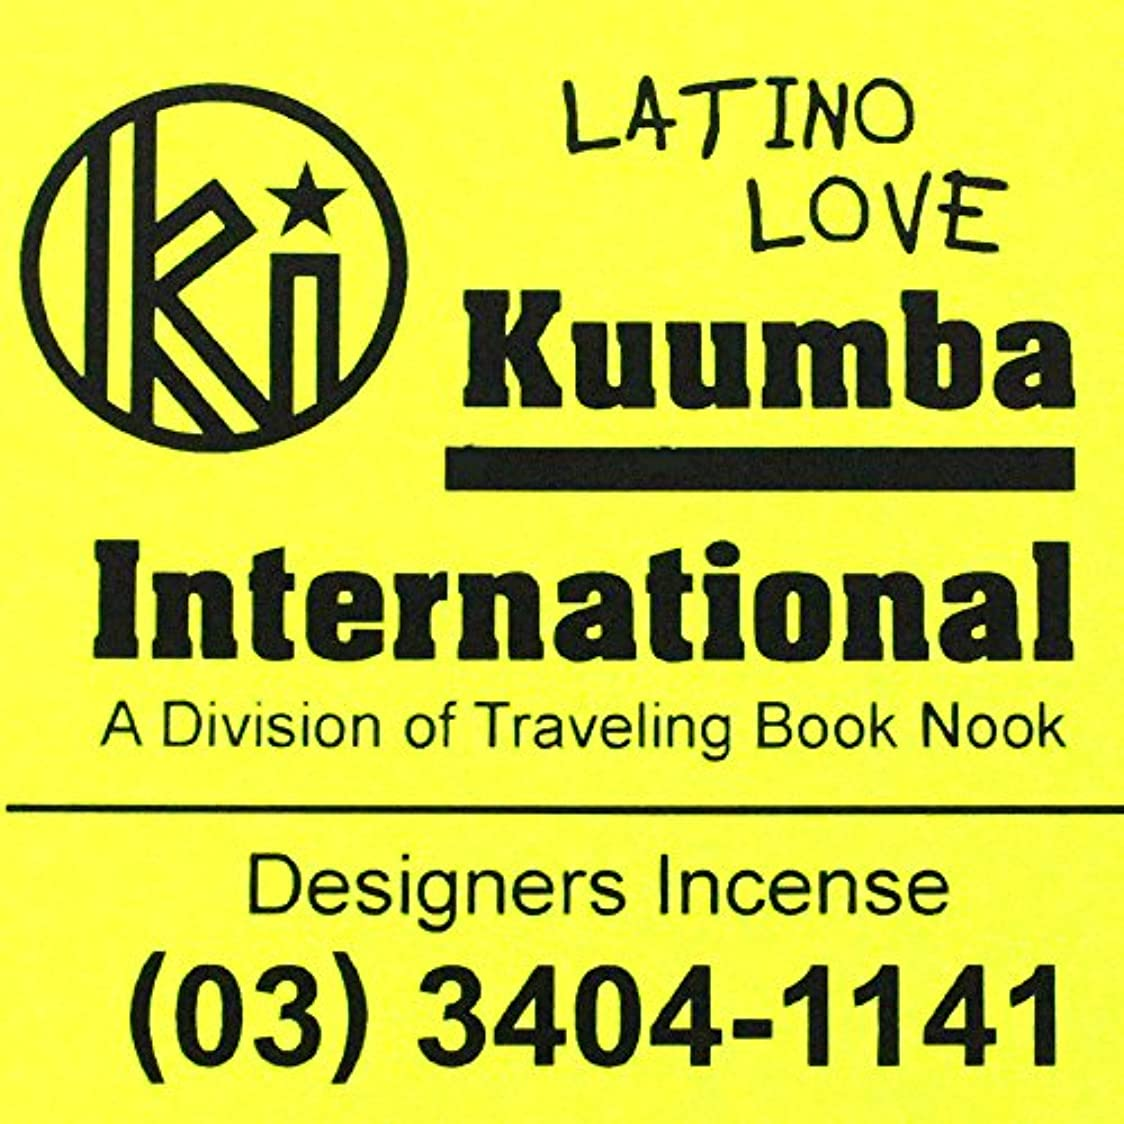 有害居心地の良い星(クンバ) KUUMBA『incense』(LATINO LOVE) (Regular size)